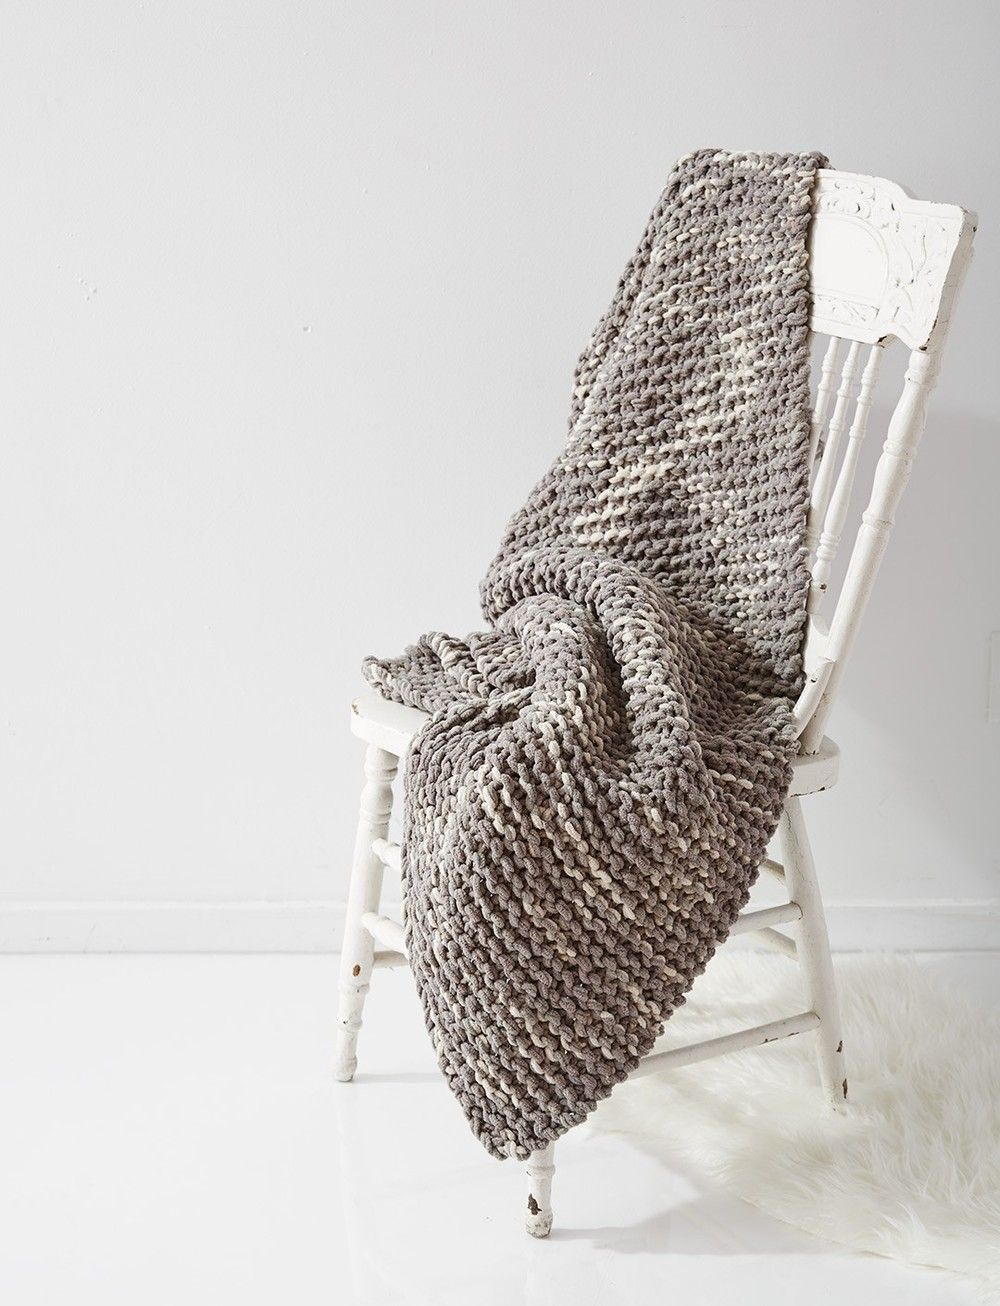 Stormy Weather Blanket | Knitting blanket patterns, Blanket and Weather